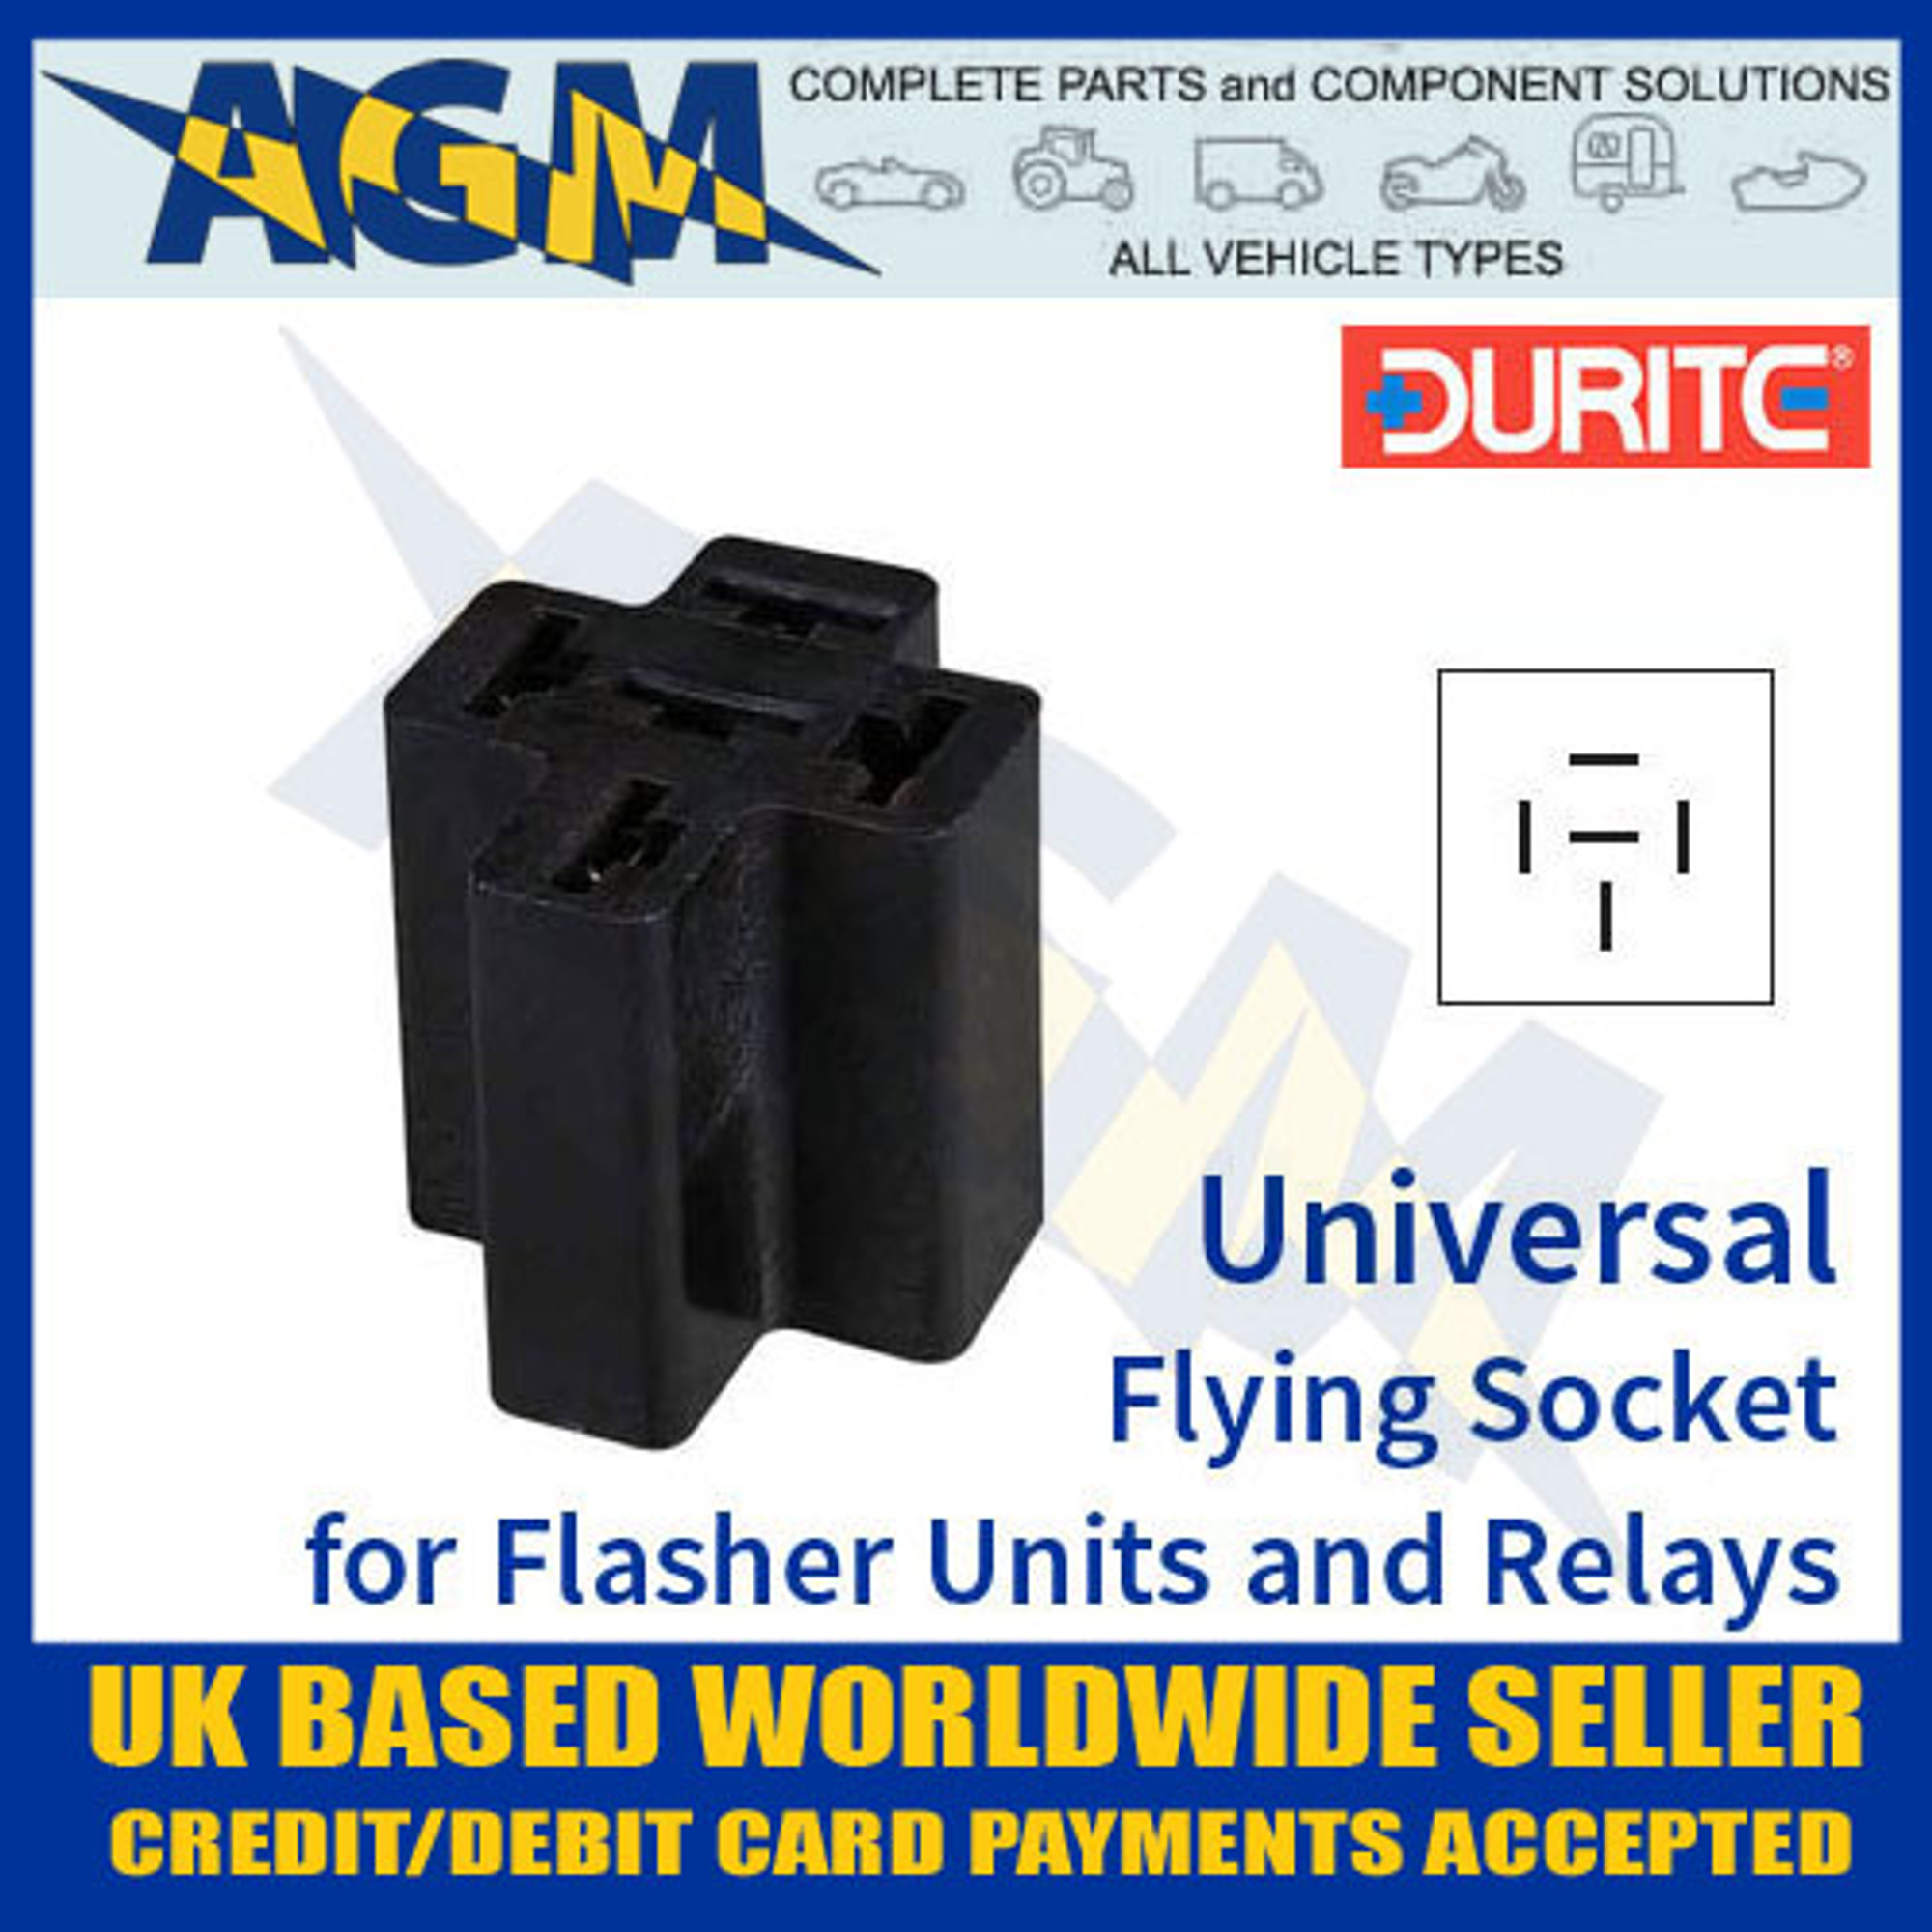 Durite Universal Flying Socket For Flasher Unit /& Relay 0-729-02